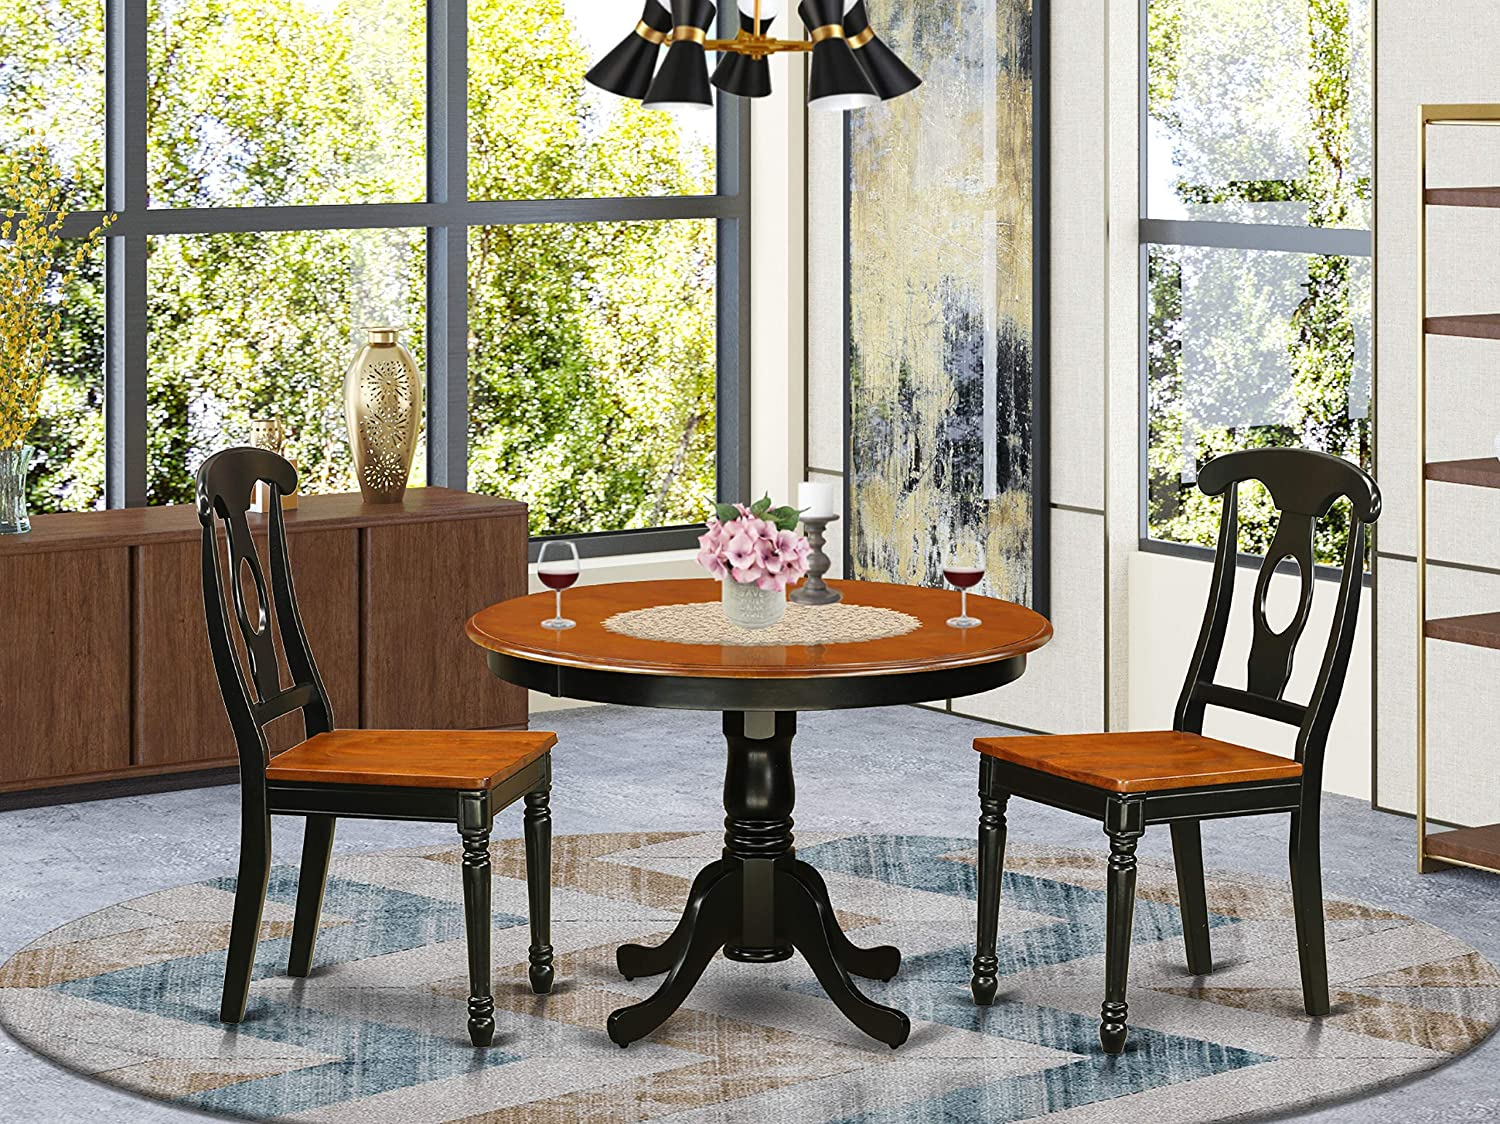 9 Pc set with a Round Small Table and 9 Wood Dinette in Black and Cherry .